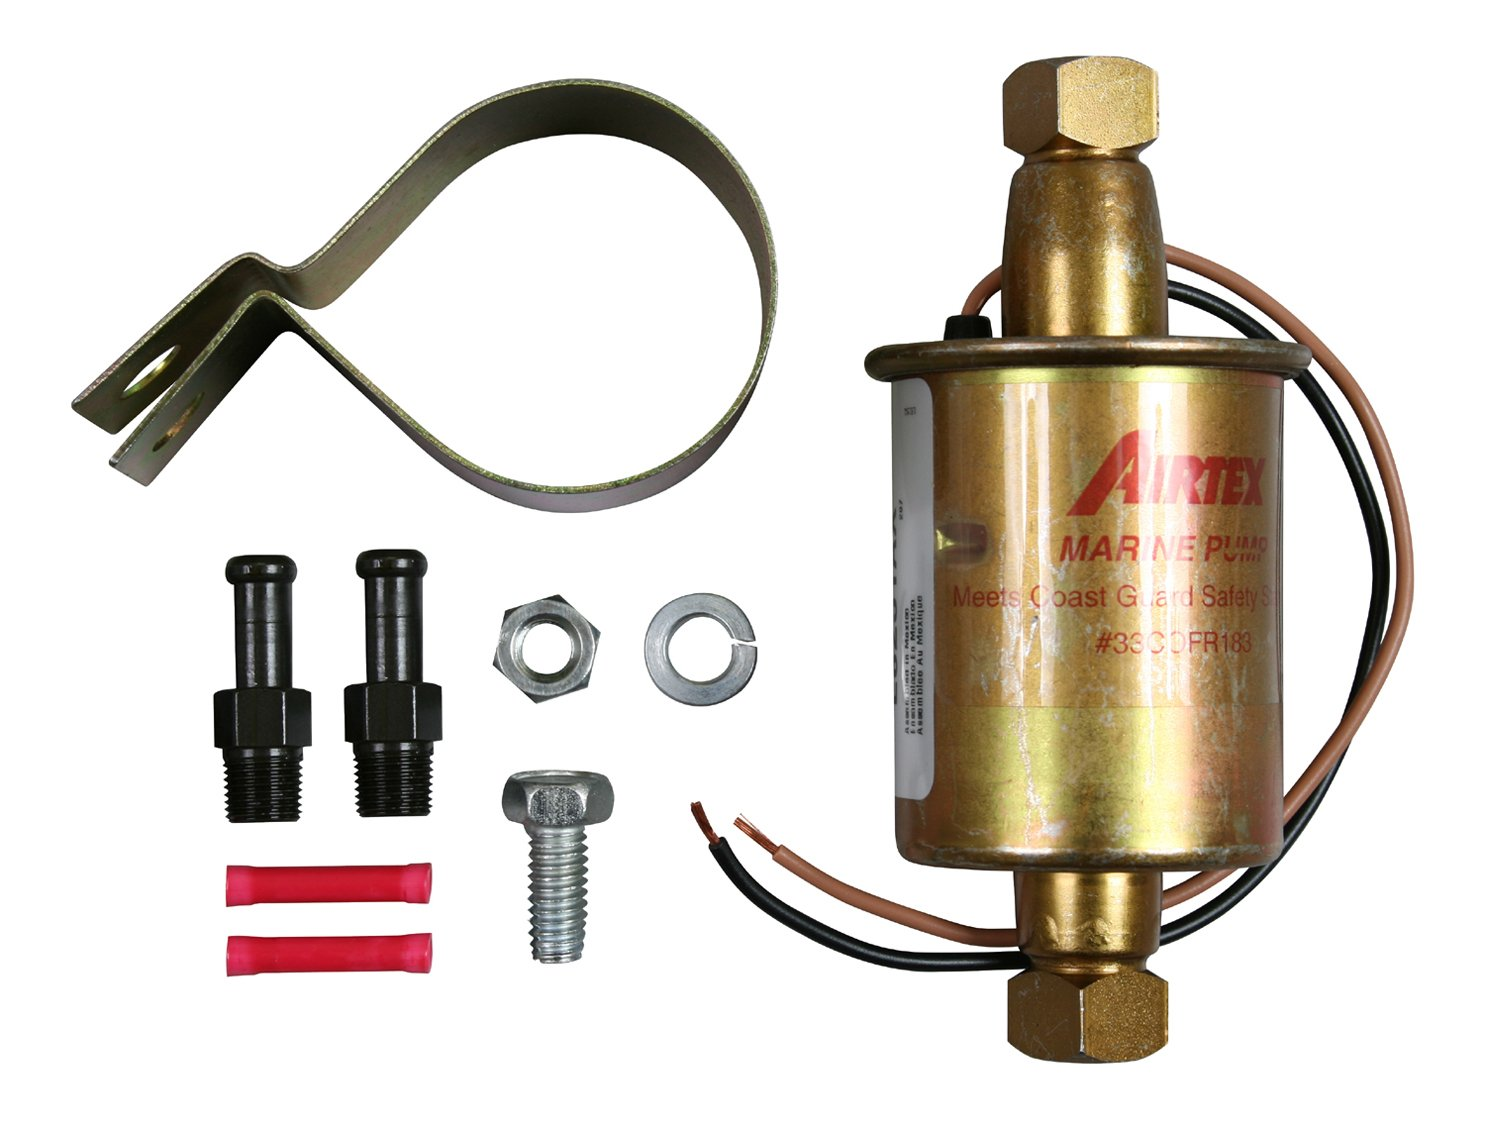 Amazon.com: Airtex E8251 Universal Solid State Universal Electric Fuel Pump  for Marine Applications: Automotive